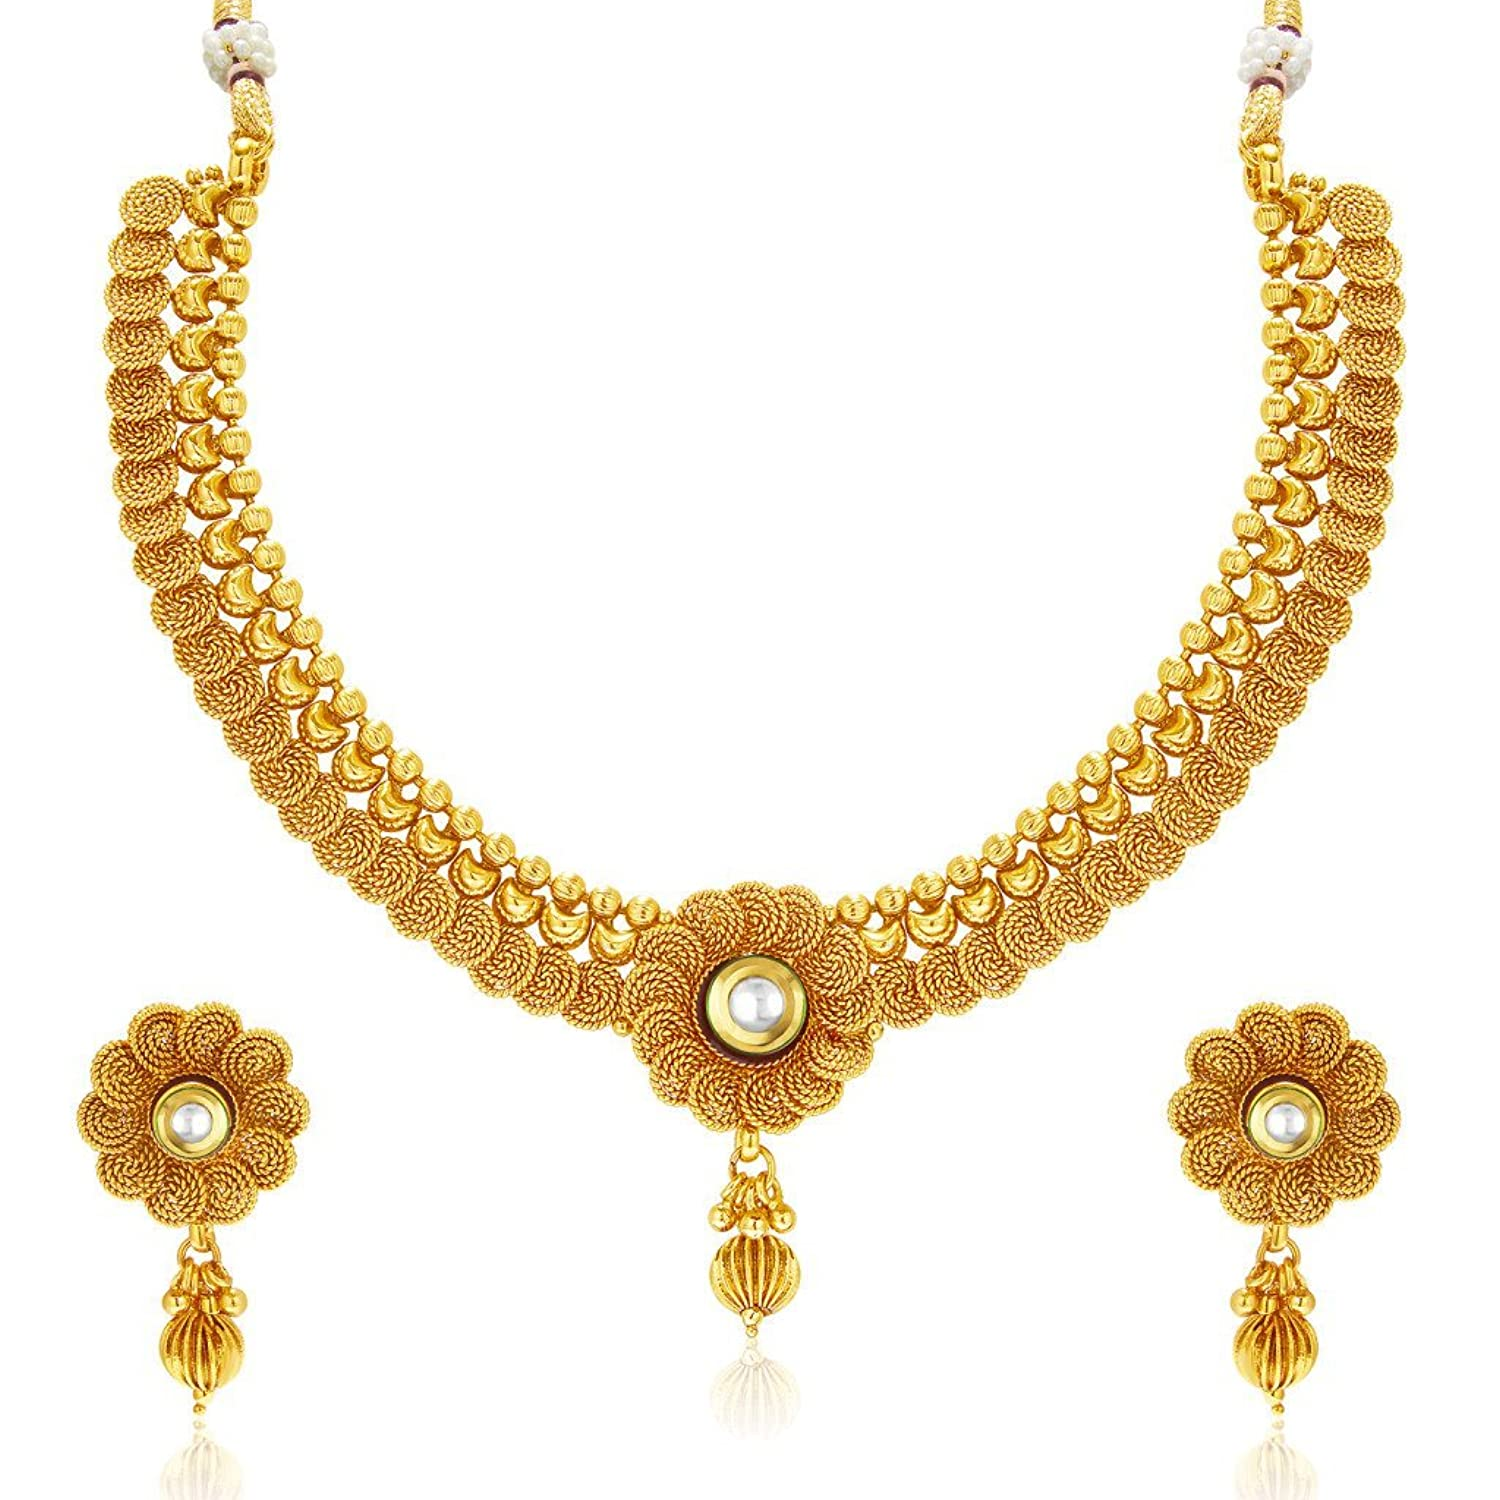 shree set rs necklace alloy buy mauli golden online